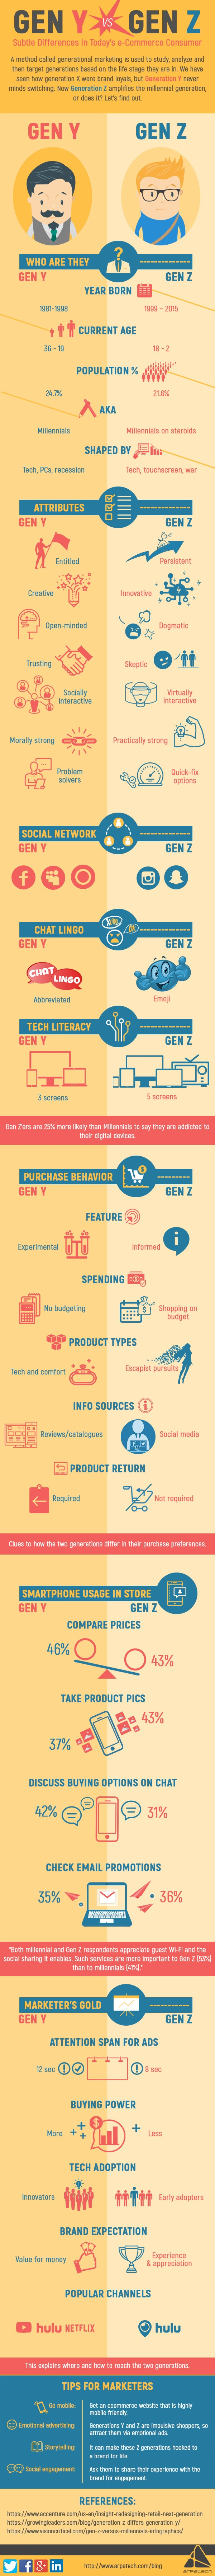 Generation Y vs Gen Z – Subtle Differences Between Today's e-Commerc